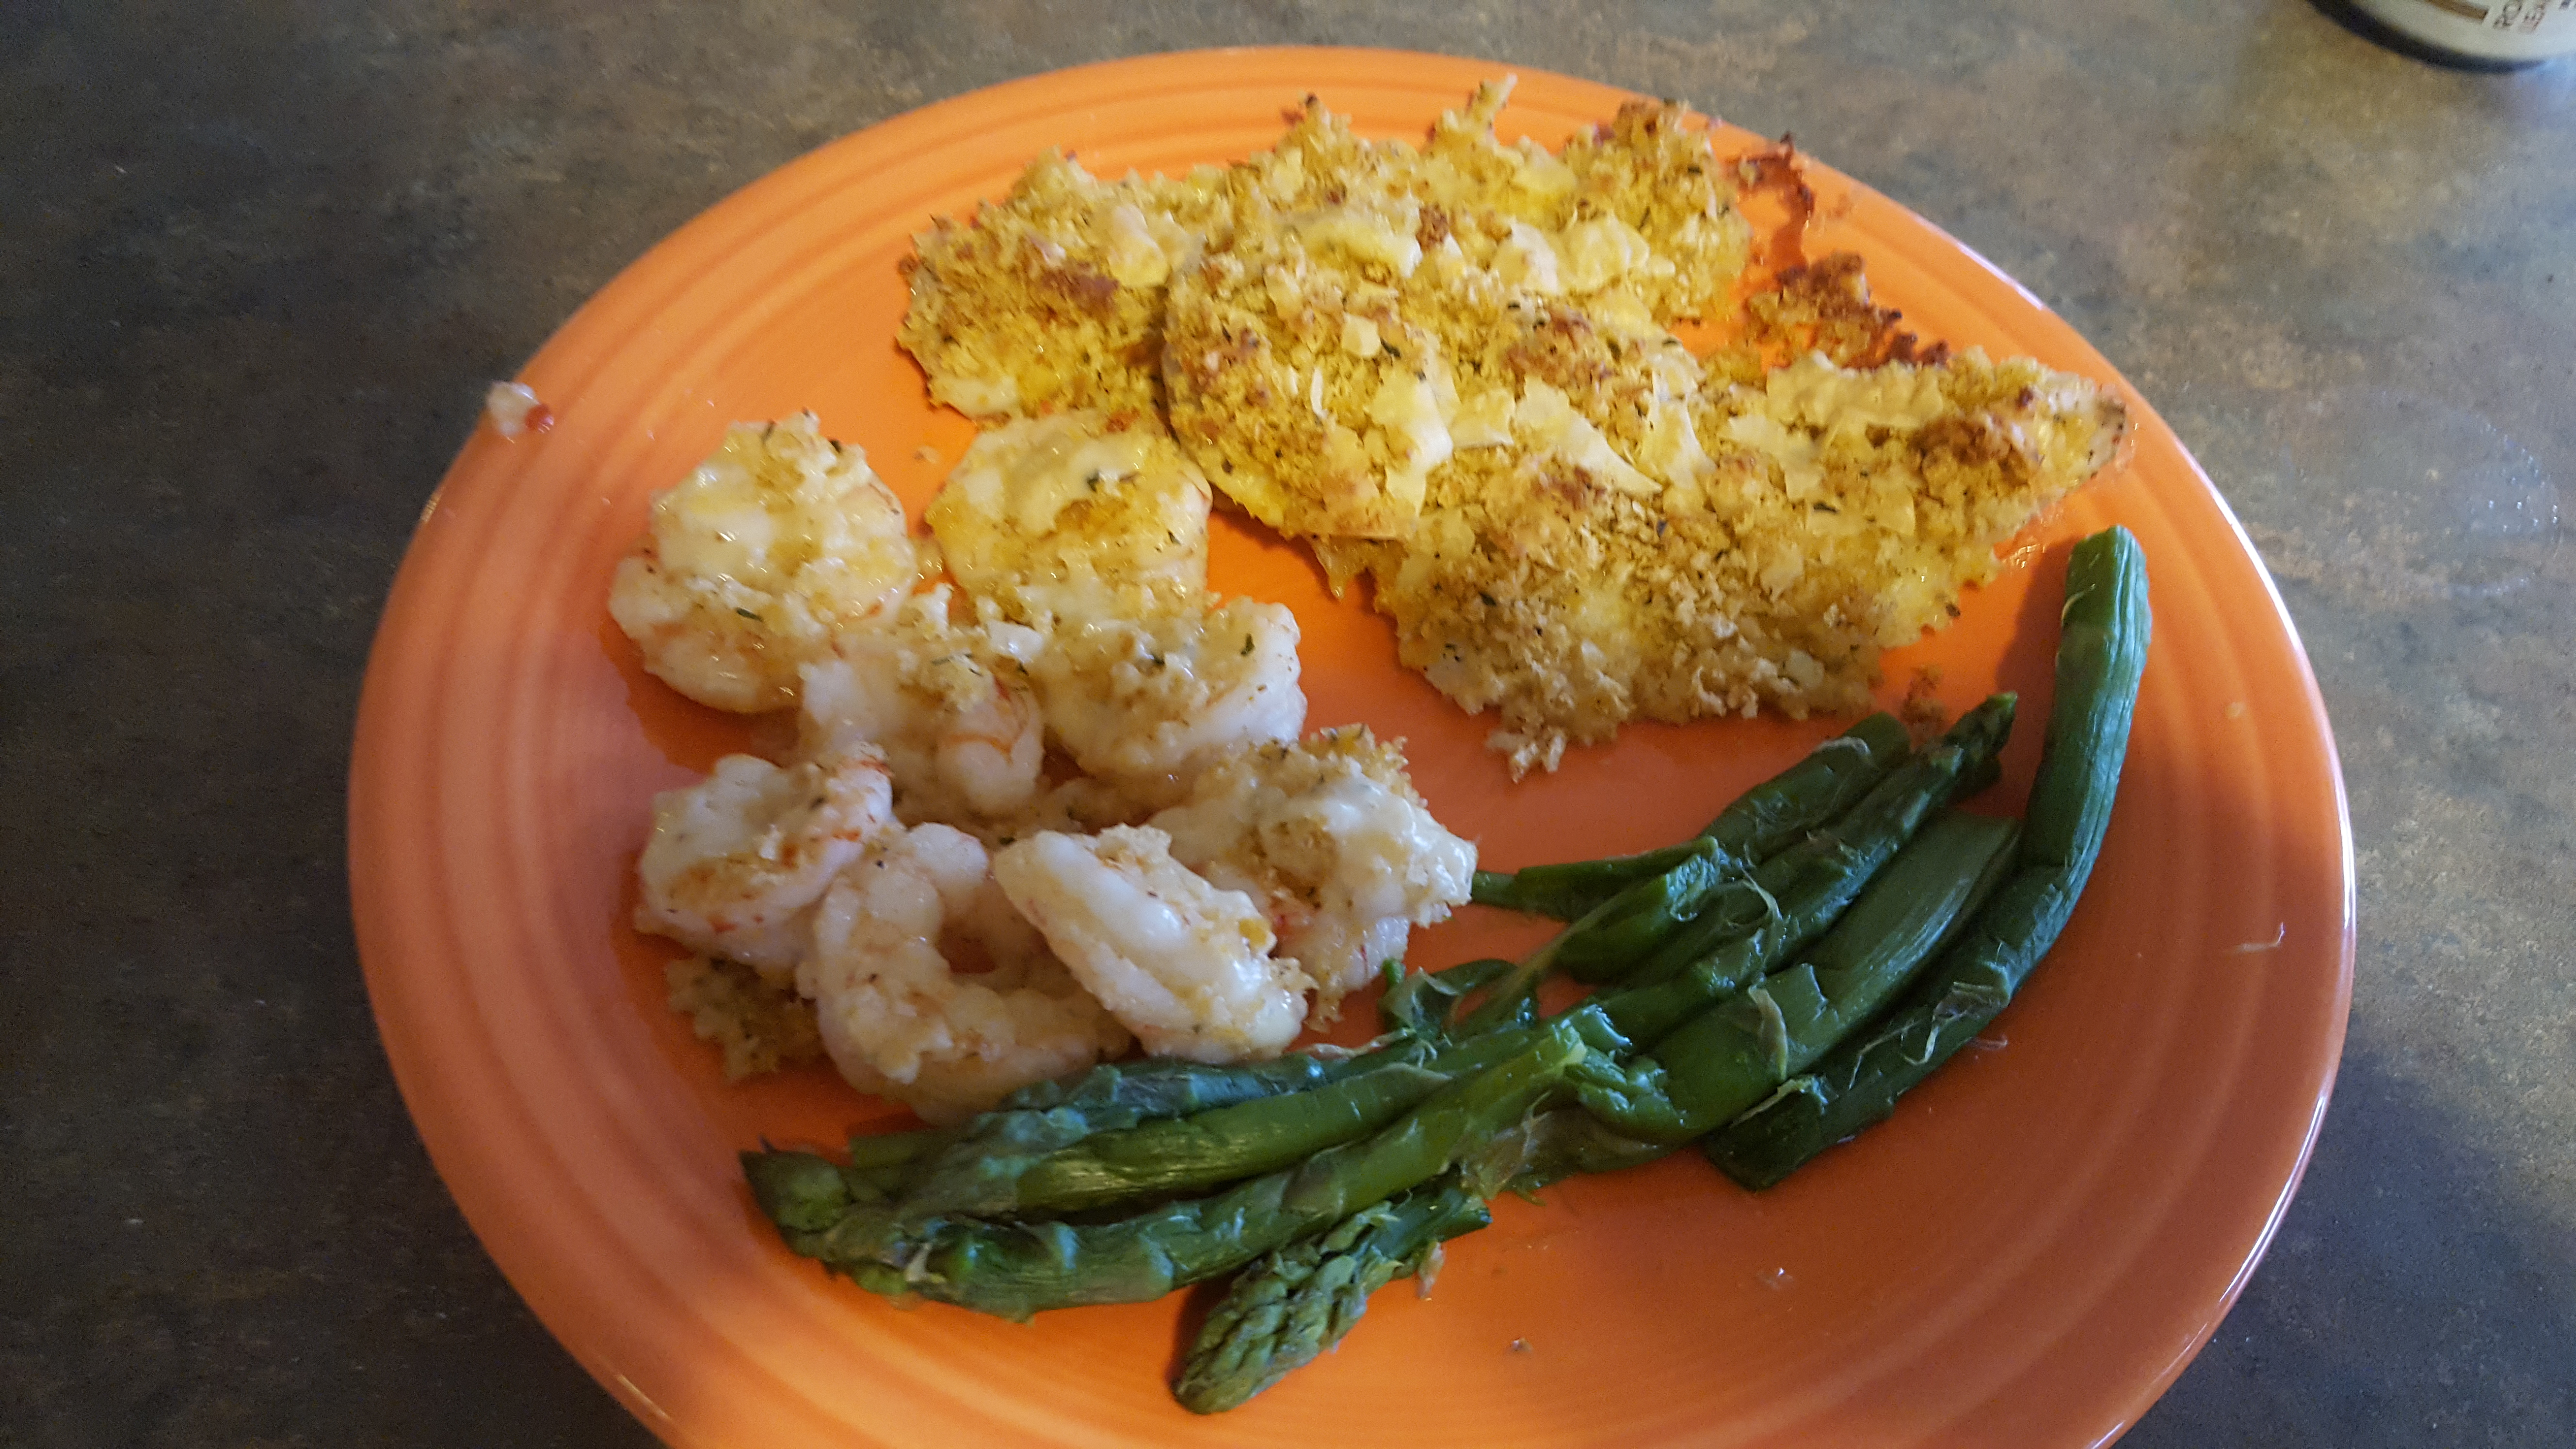 Baked Flounder with Panko and Parmesan Bryan Boone